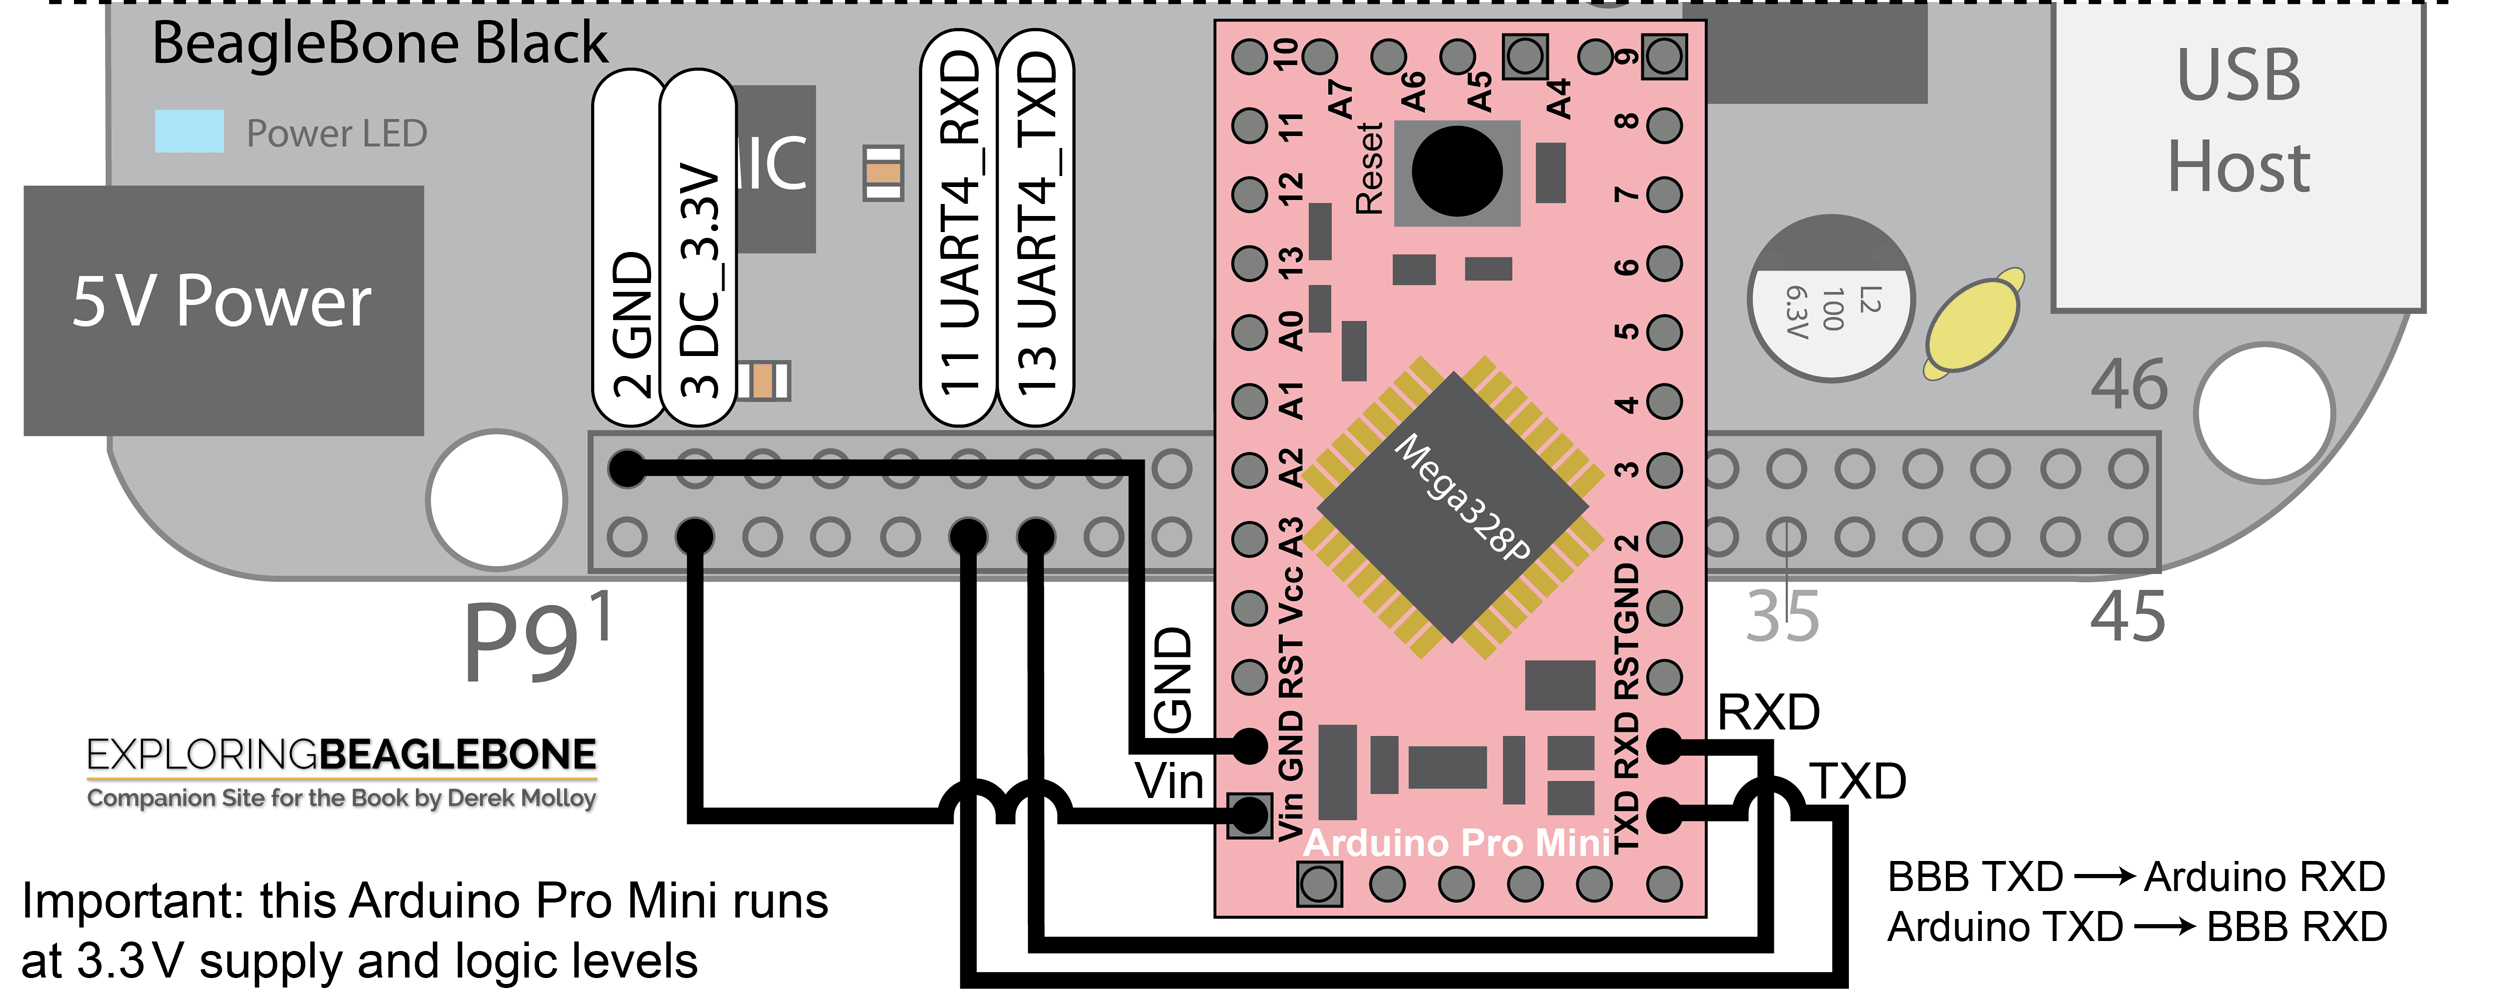 Exploring Beaglebone Chapter 8 Interfacing To The Buses Pro 197 Wiring Diagram Figures In This Which May Help You Circuits Please Note That Can Close Pop Up Window By Pressing Escape Key